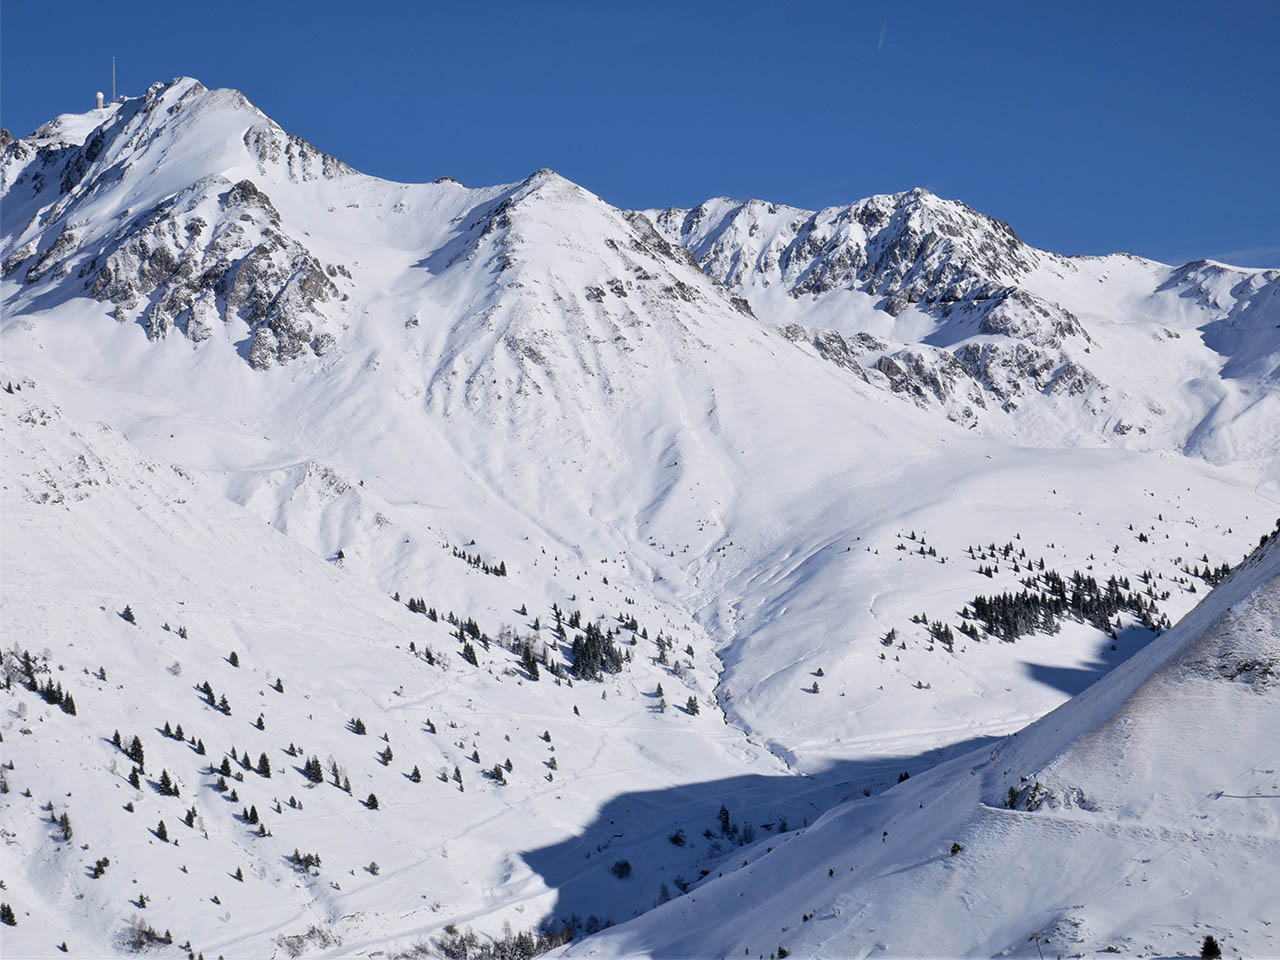 Domaine skiable grand tourmalet